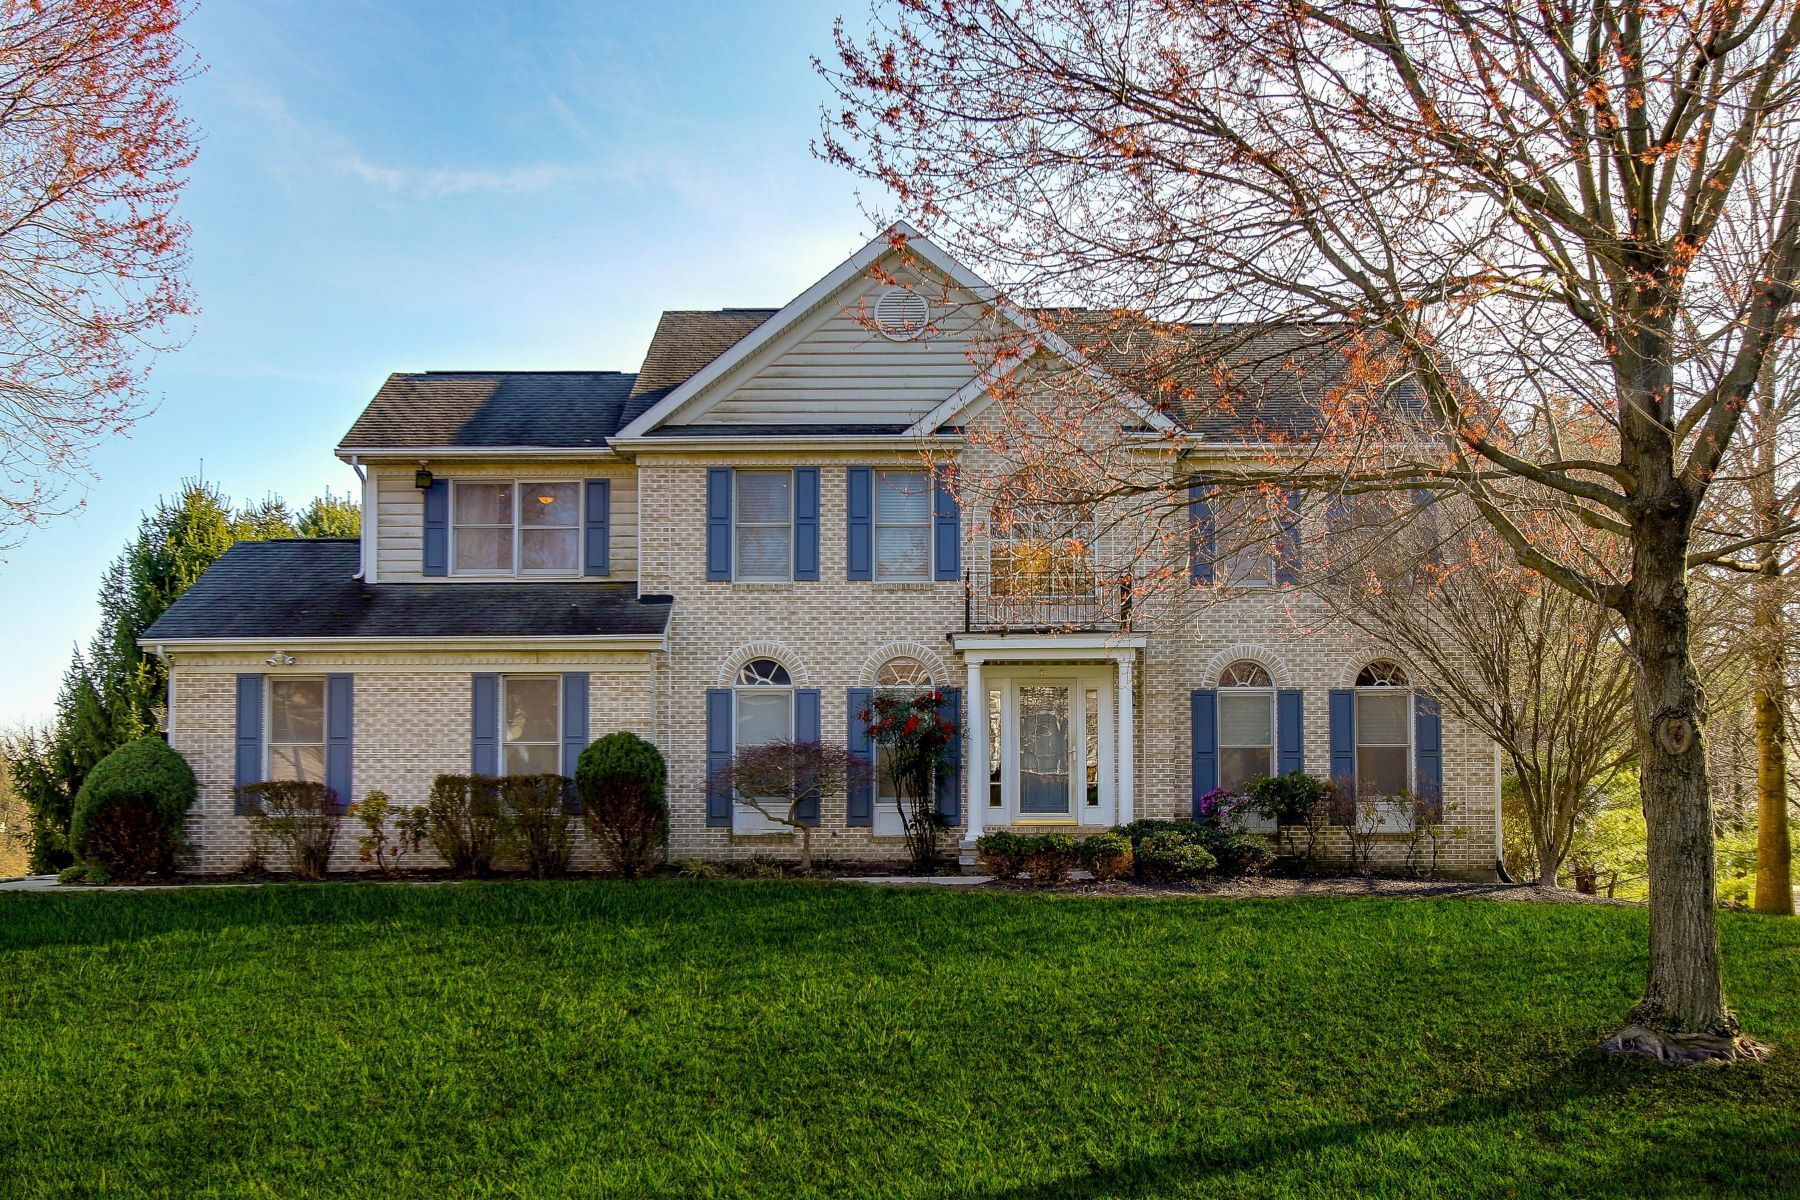 Single Family Homes for Sale at Worthington Park 57 Beecham Court Owings Mills, Maryland 21117 United States